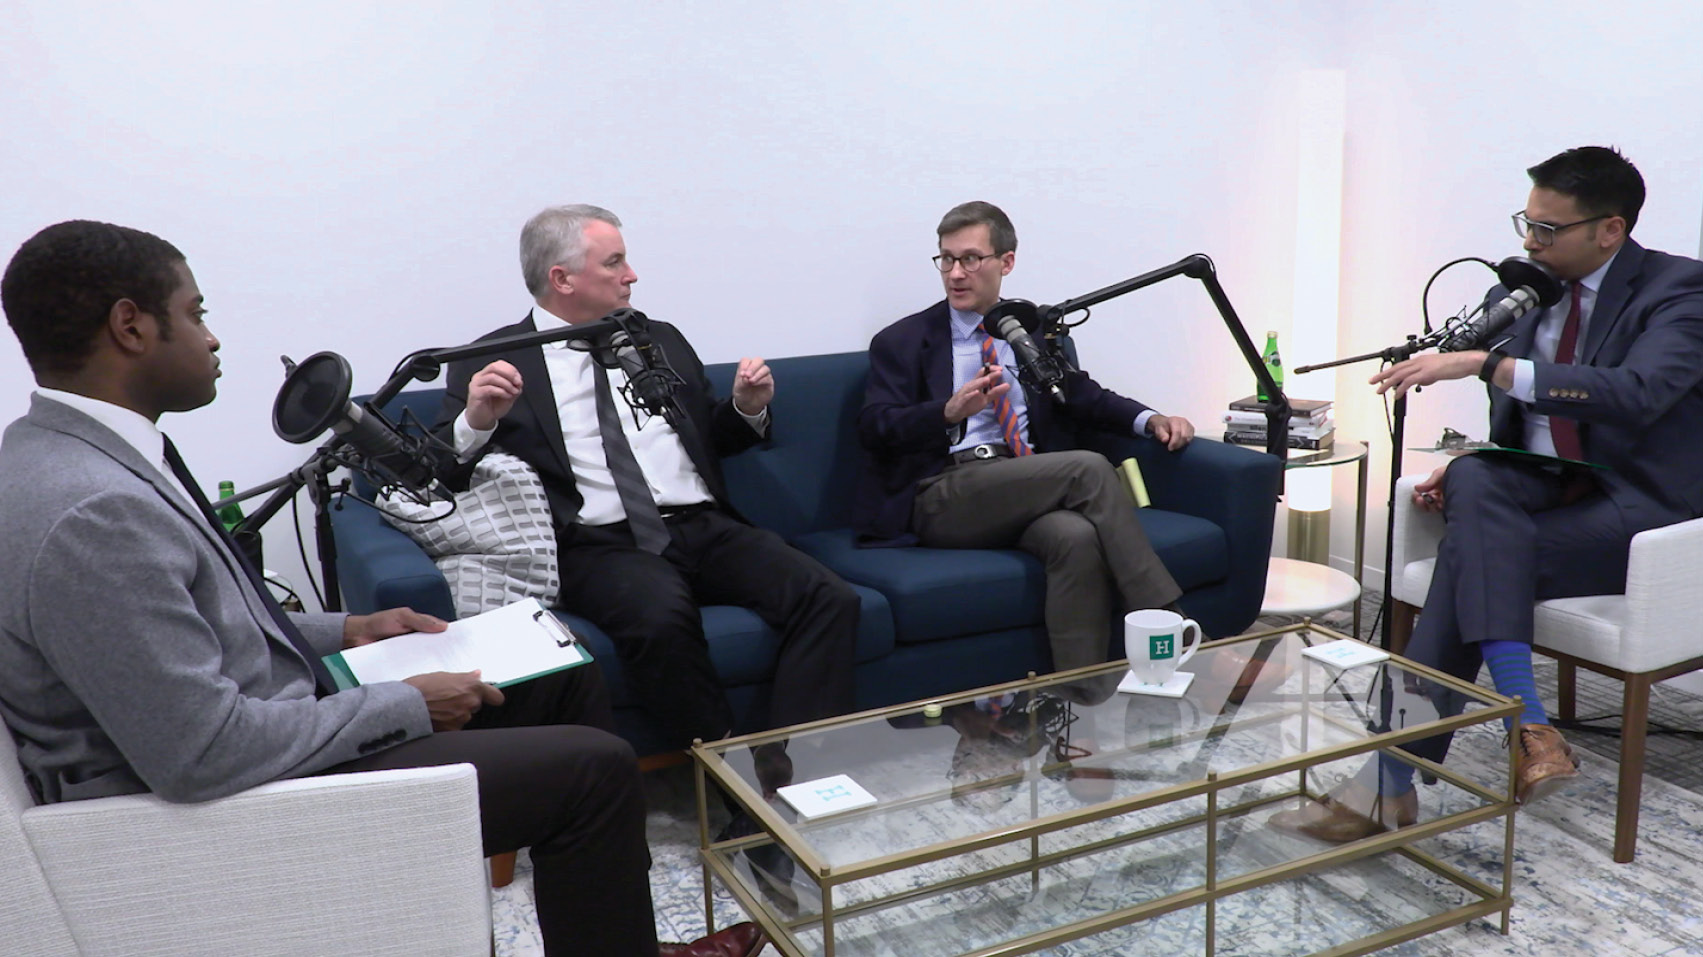 Michael Doran and Blaise Misztal debate Syria, Turkey, the Kurds, and the state of the U.S. alliance system